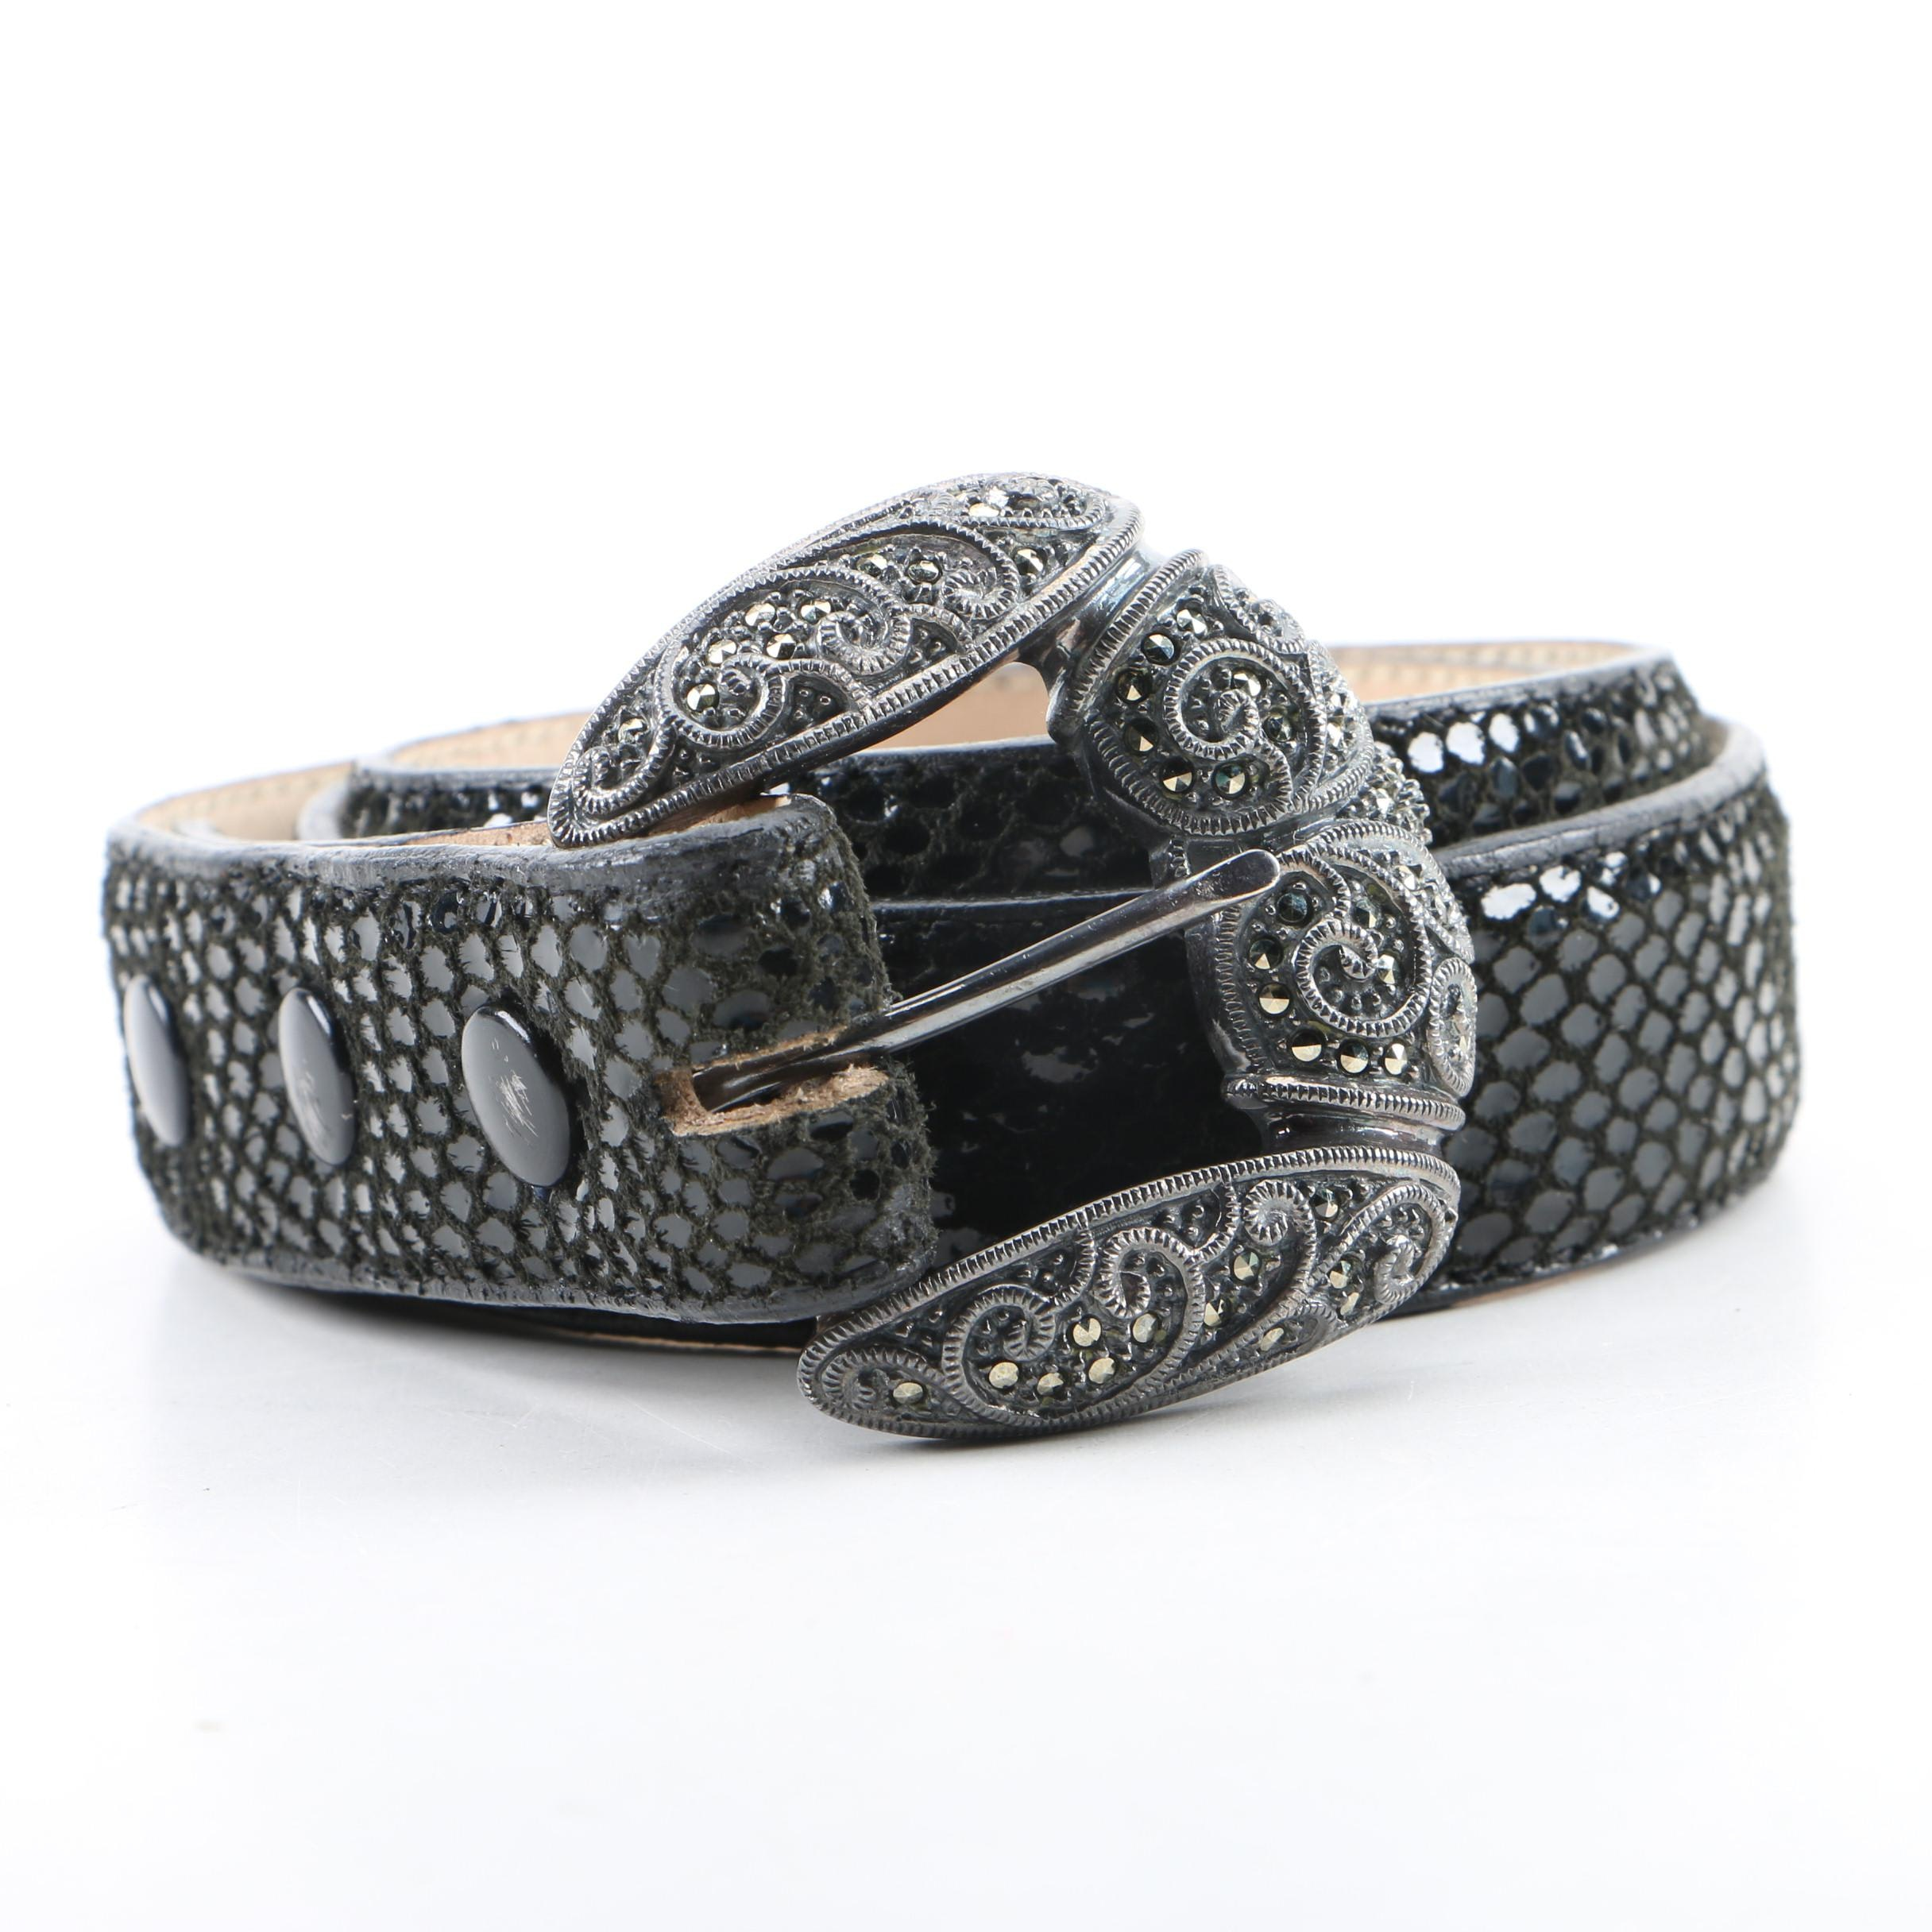 Judith Jack Embossed Black Leather Belt with Sterling and Marcasite Buckle